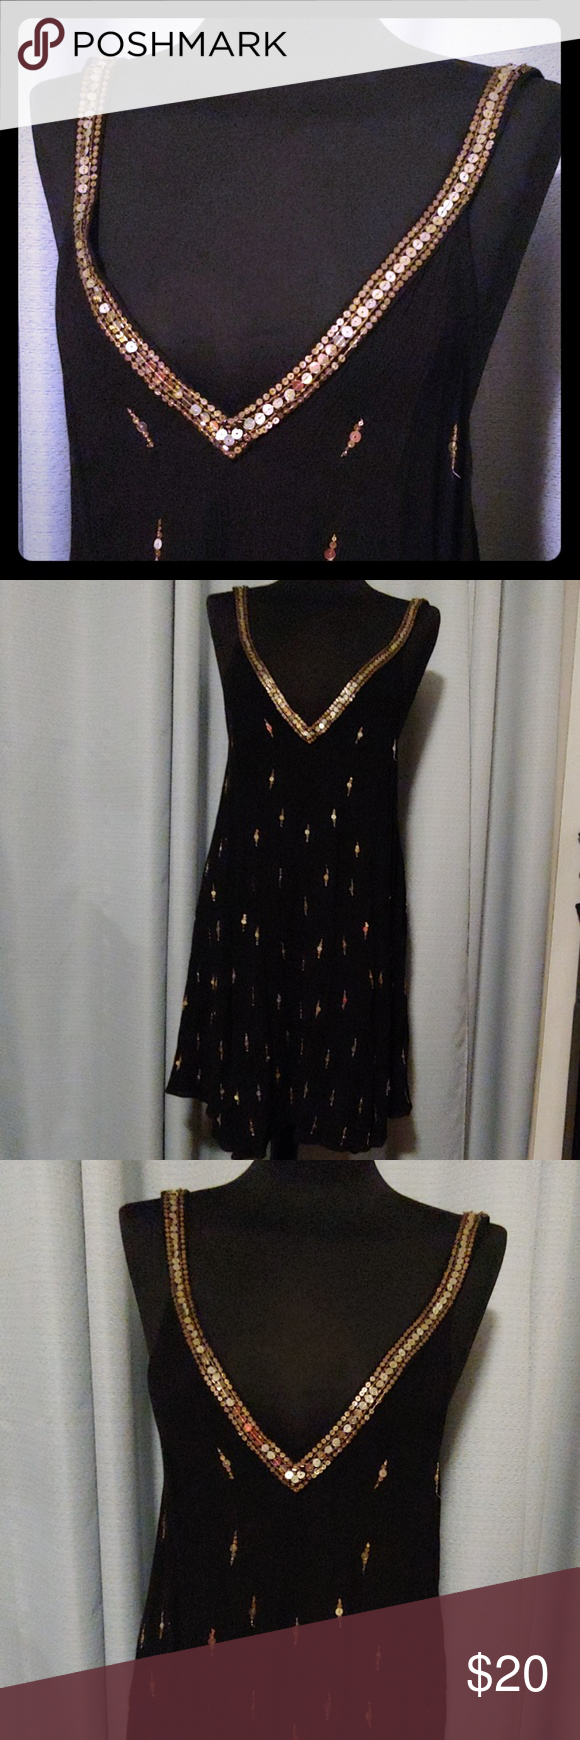 Free People dress Deep V Black with gold Sequin design Has an imperfection on the left strap pictured  The V part has some weird stiching also pictured above Price reflects Size small but can also fit a medium Cute and flowy Great outfit for a summer dinner on a beach ???? NWOT Free People Dresses #summerdinneroutfits Free People dress Deep V Black with gold Sequin design Has an imperfection on the left strap pictured  The V part has some weird stiching also pictured above Price reflects Size sm #summerdinneroutfits